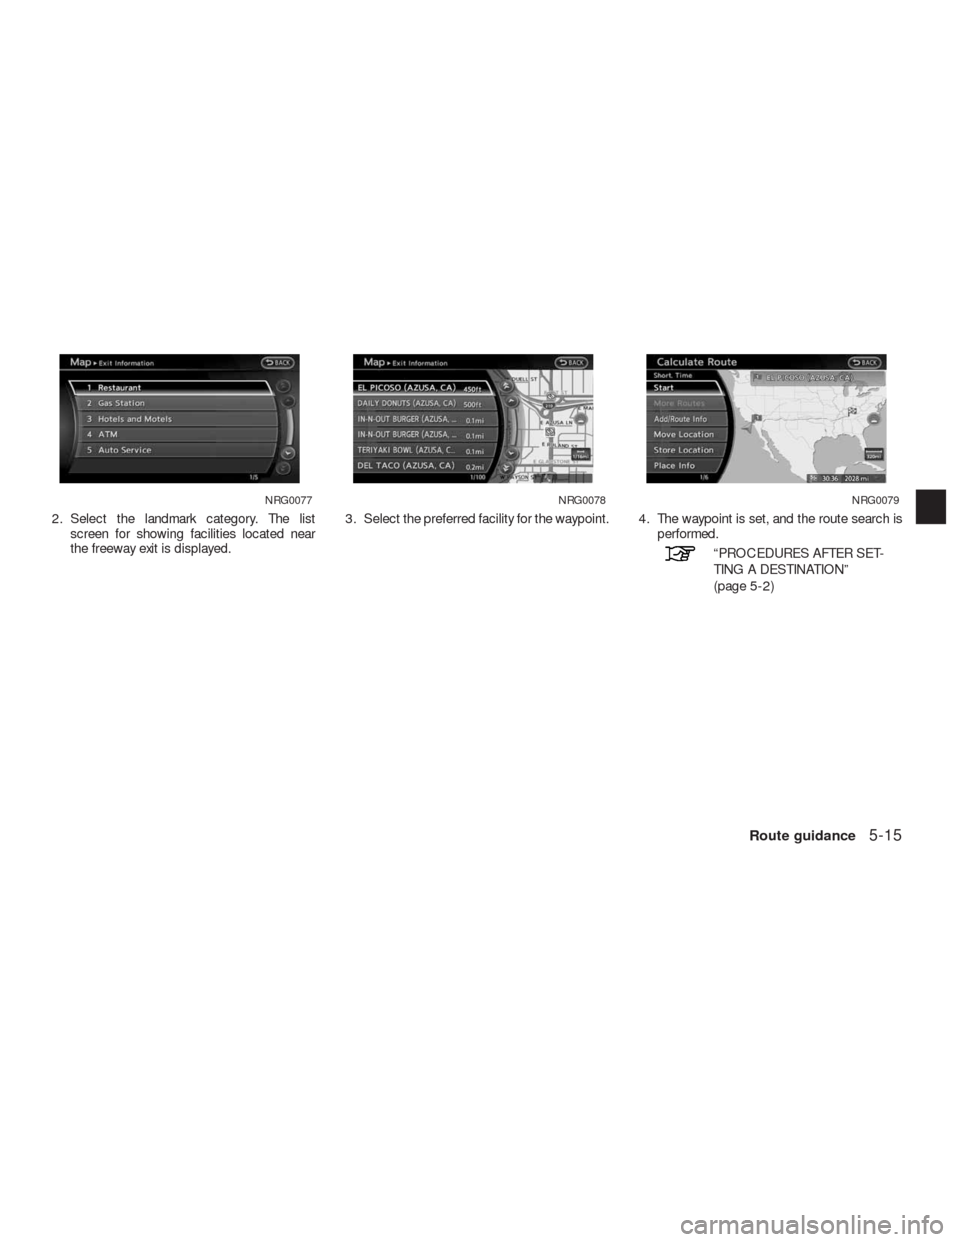 NISSAN ALTIMA HYBRID 2010 L32A / 4.G Navigation Manual, Page 120